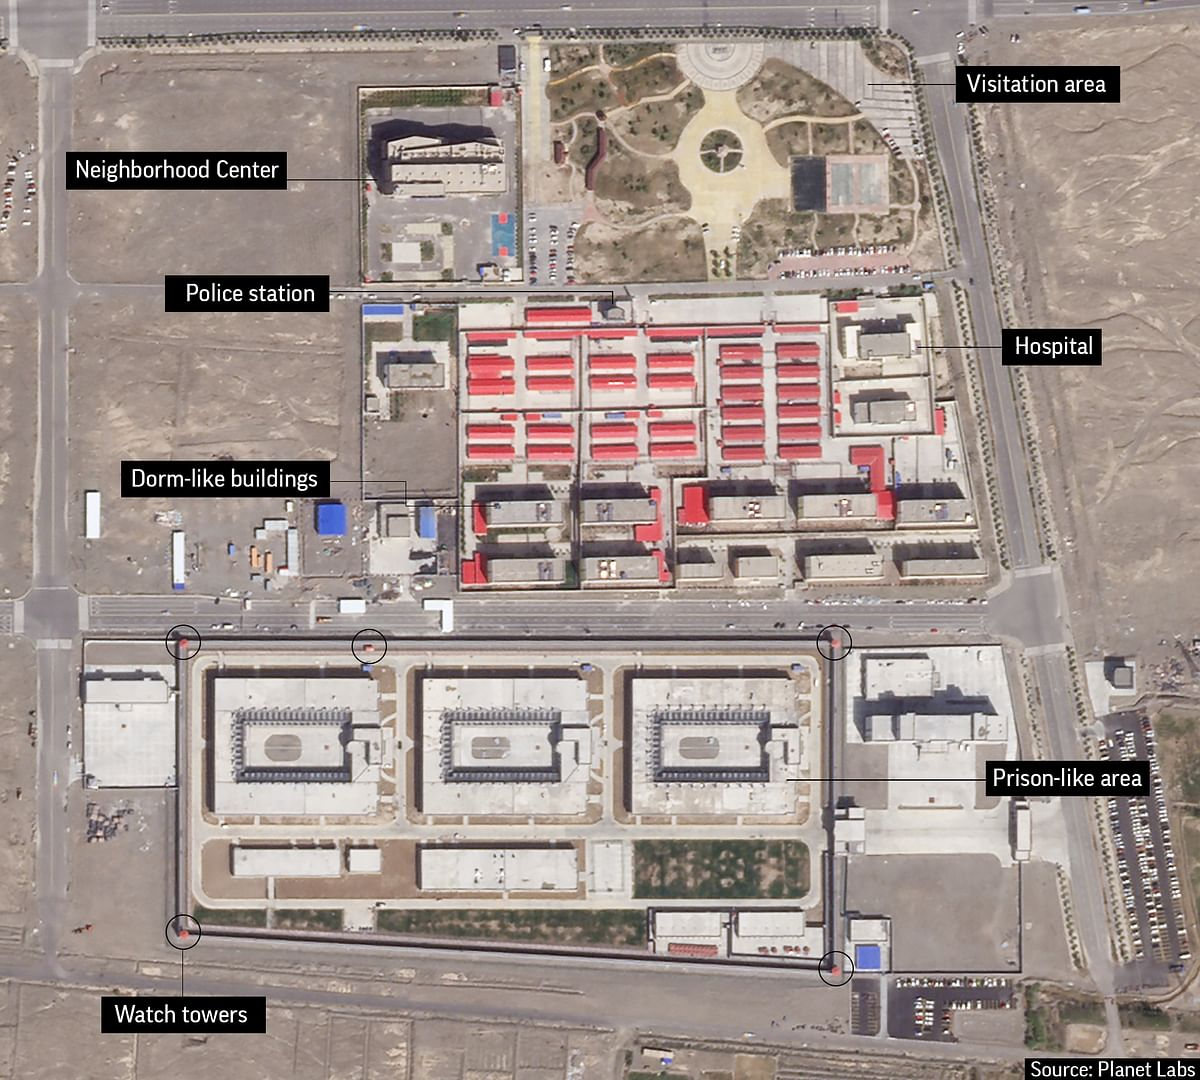 In this file satellite image provided by Planet Labs, buildings are seen around the Kunshan Industrial Park in Artux in western China's Xinjiang region.